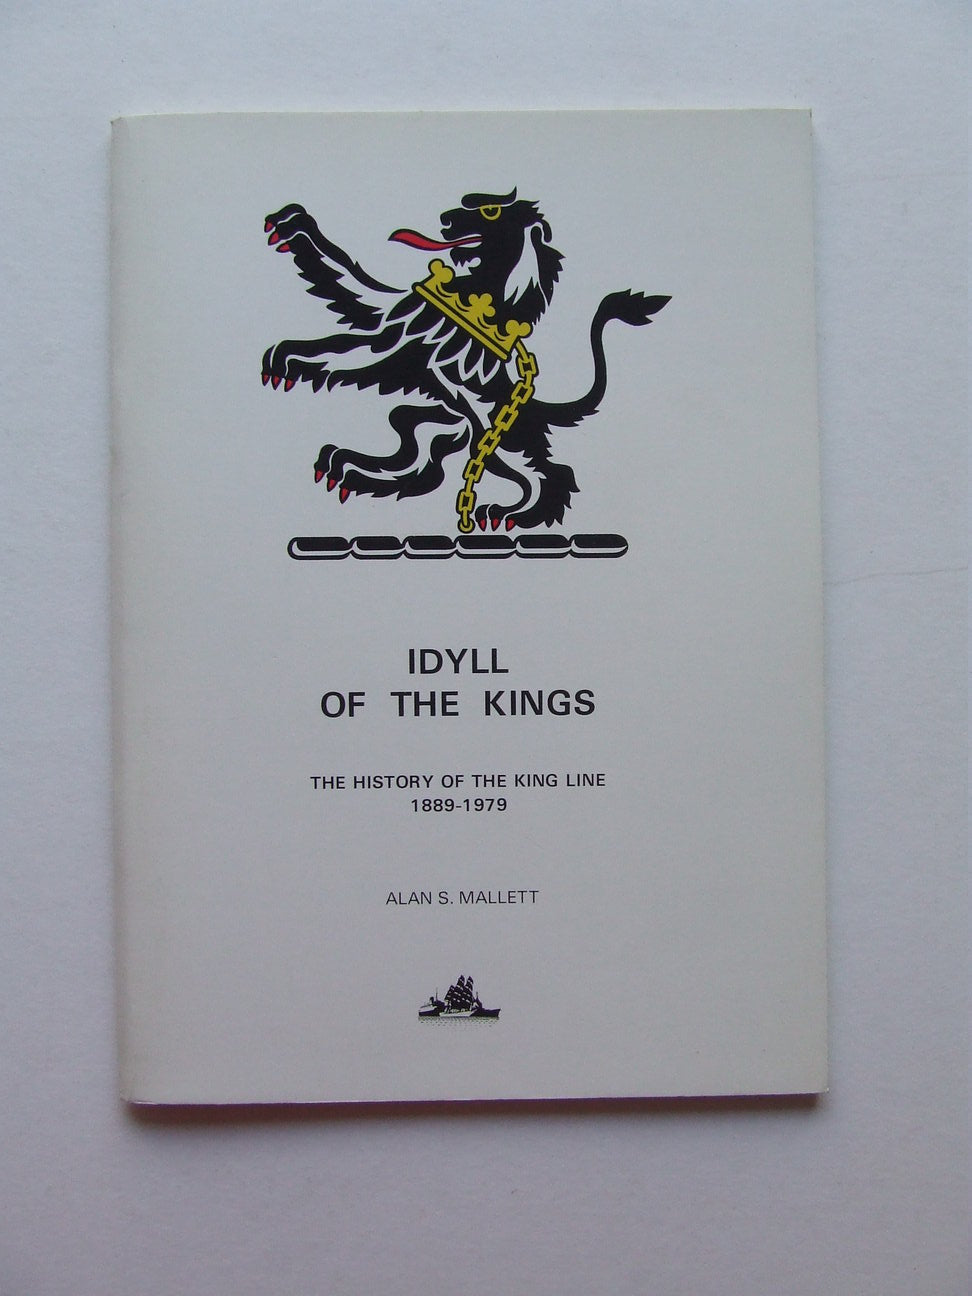 Idyll of the Kings, the history of the King Line 1889-1979